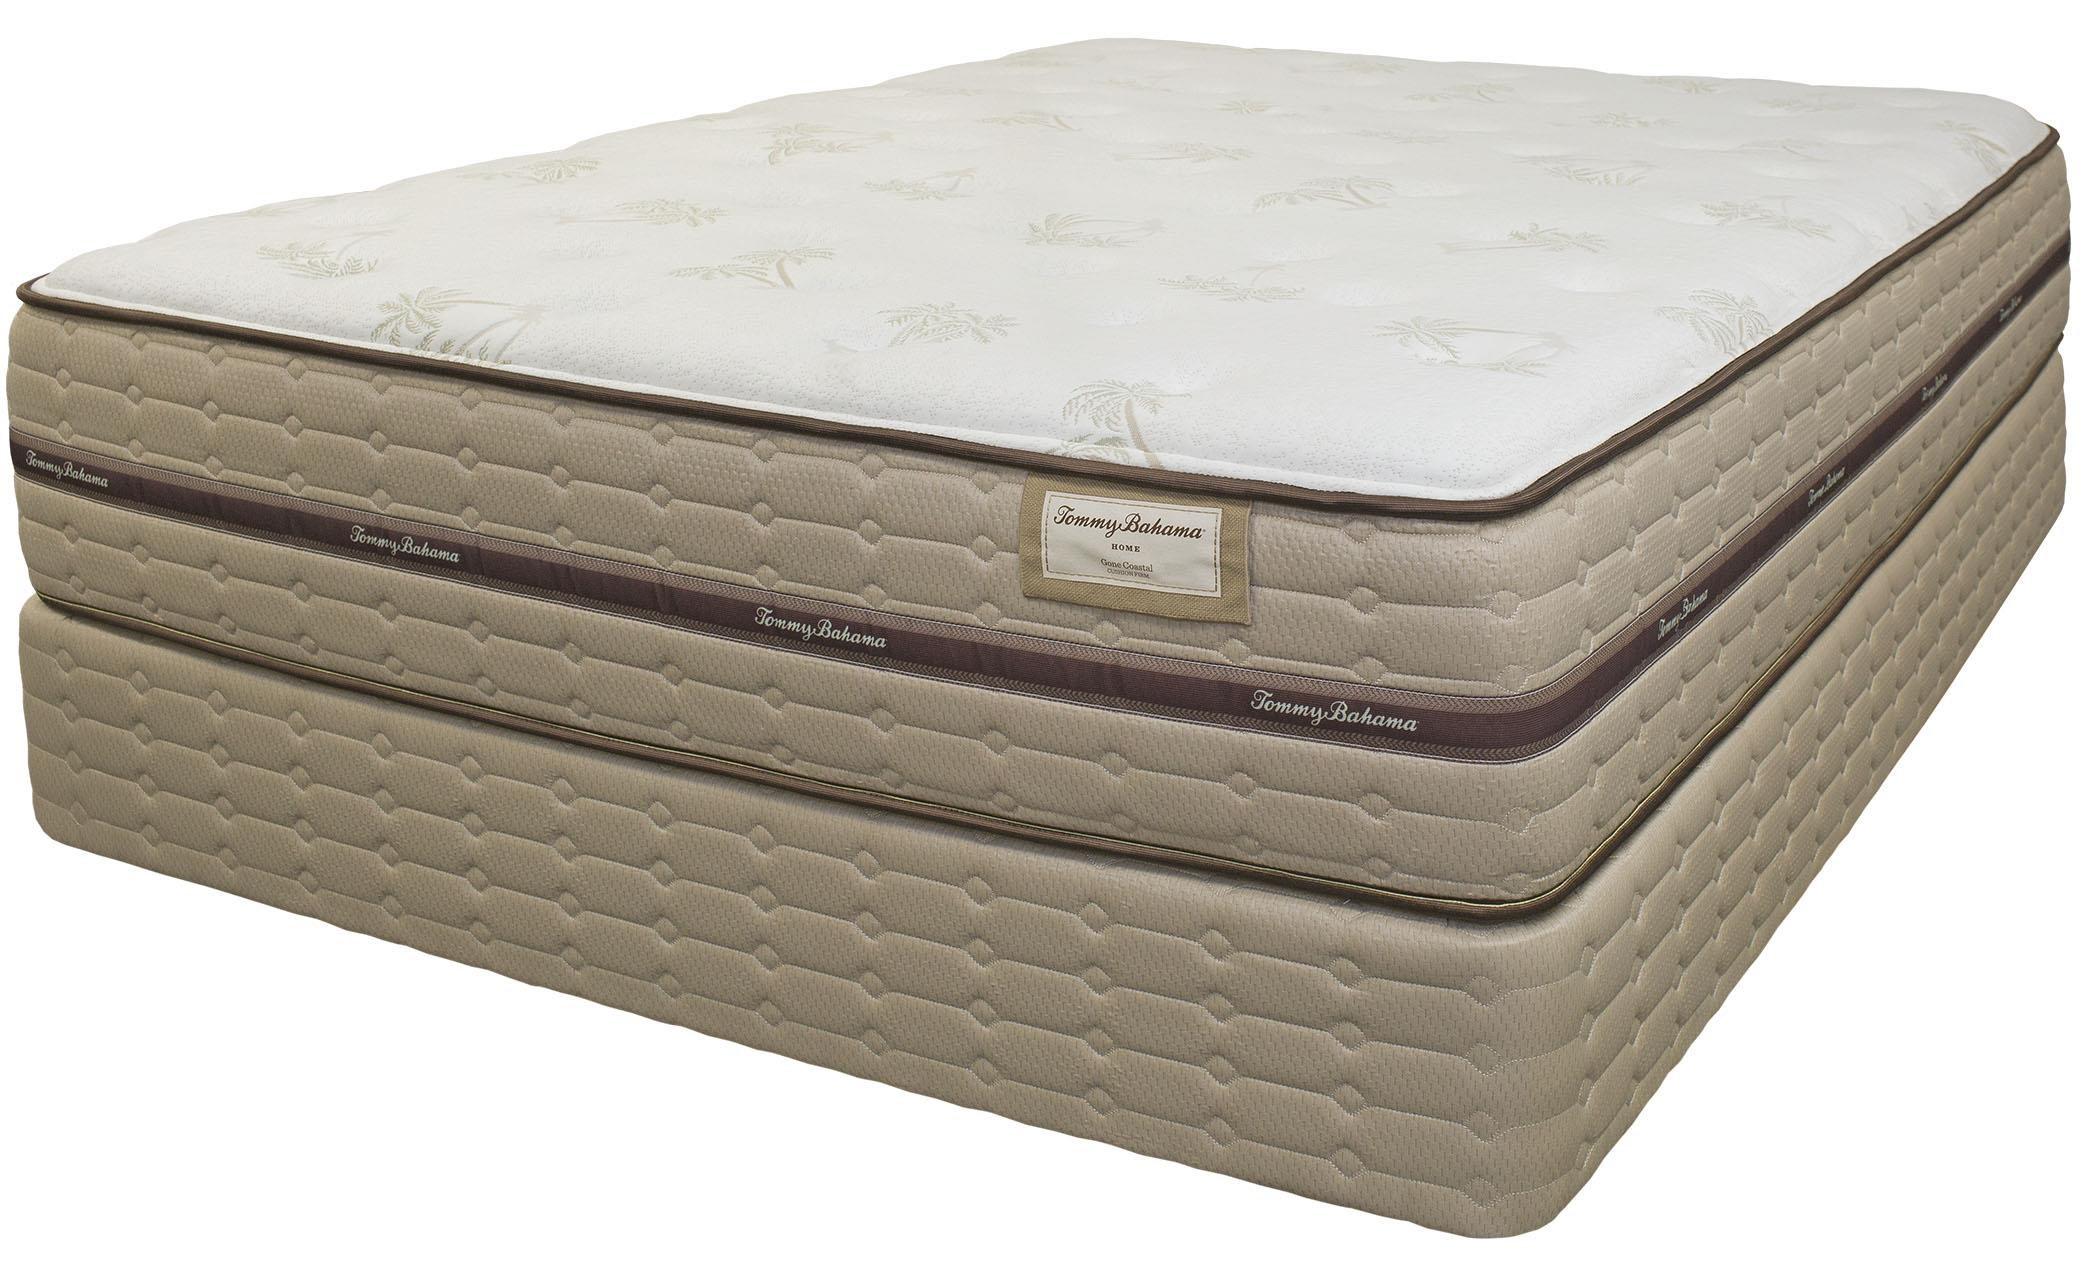 Tommy Bahama Mattress Tommy Bahama Mattress 6020 Q Queen